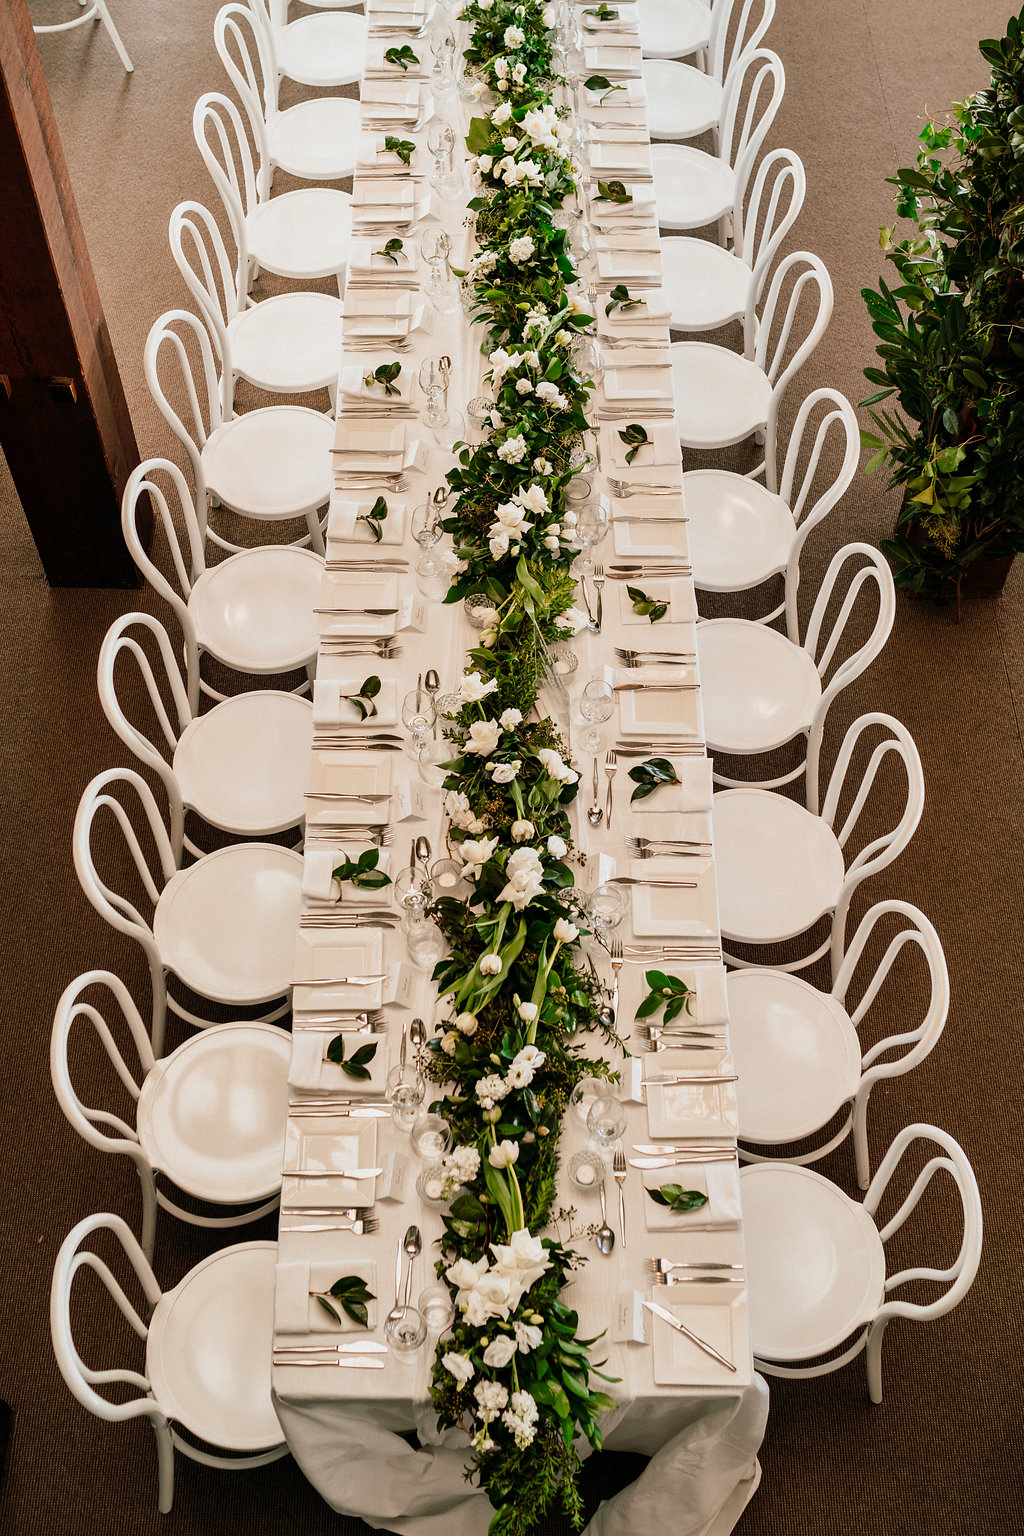 Lush reception table garlands with white blooms